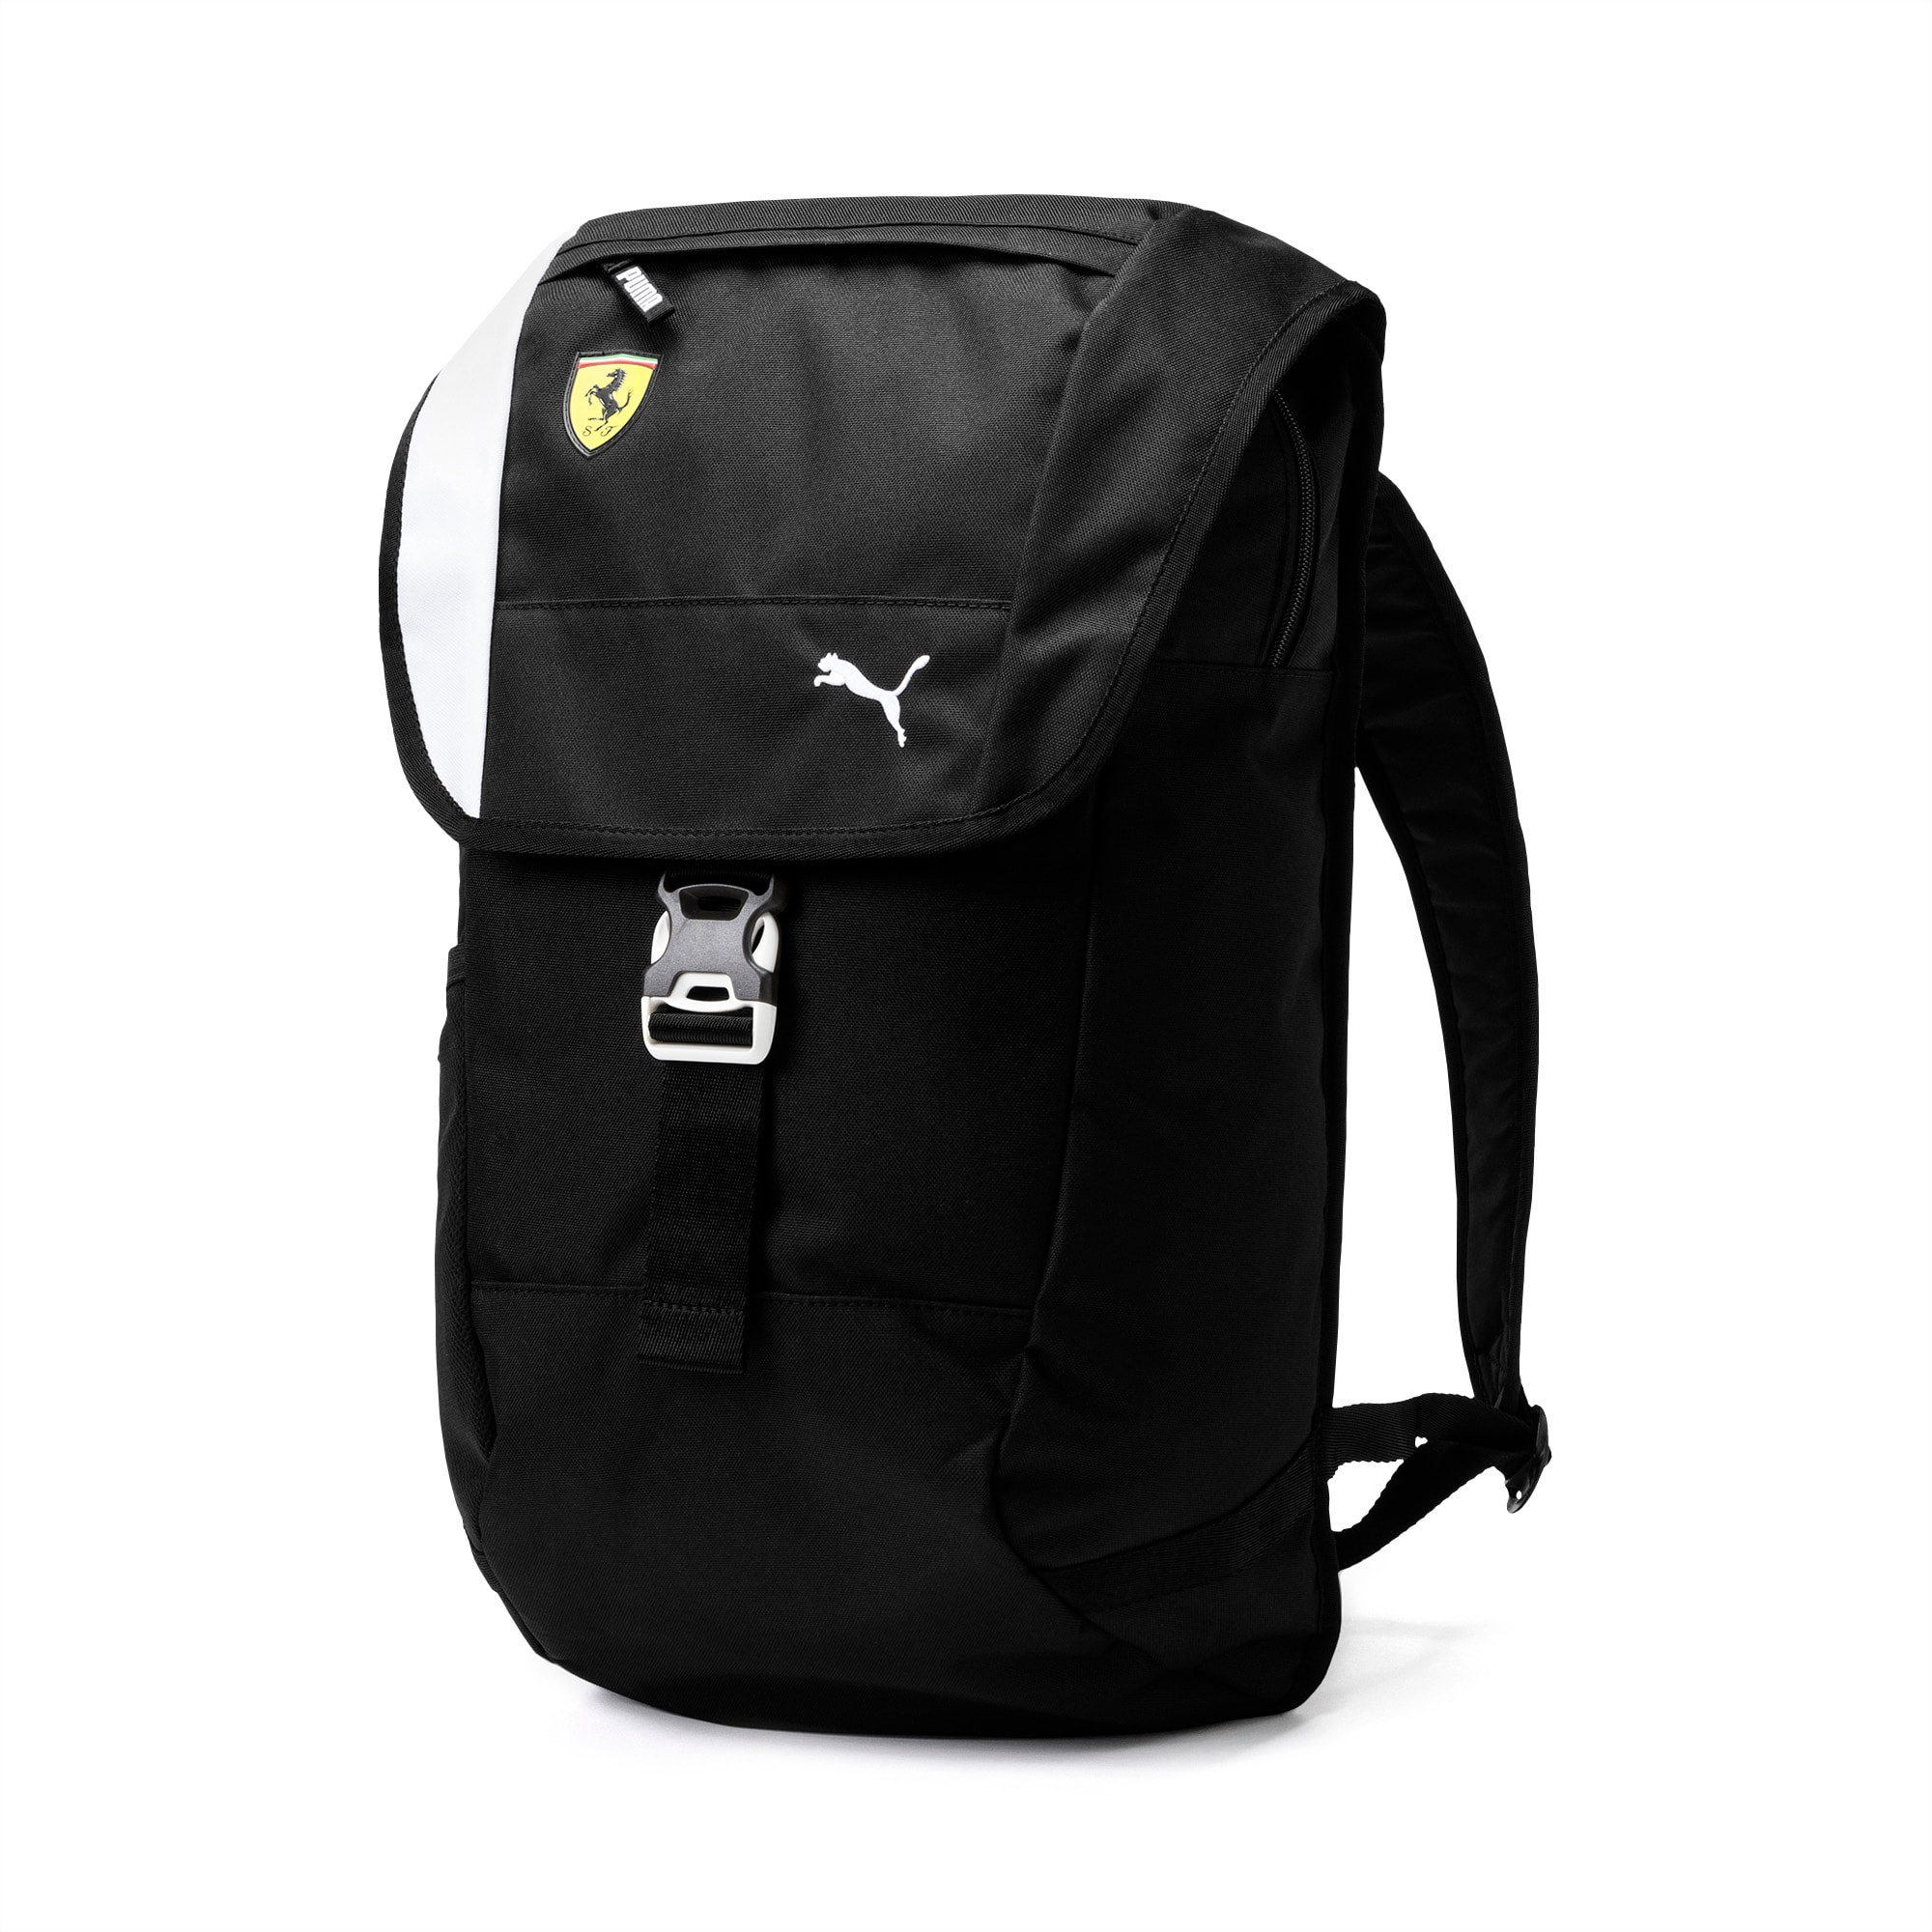 Ferrari Fanwear Backpack, Puma Black, large-SEA